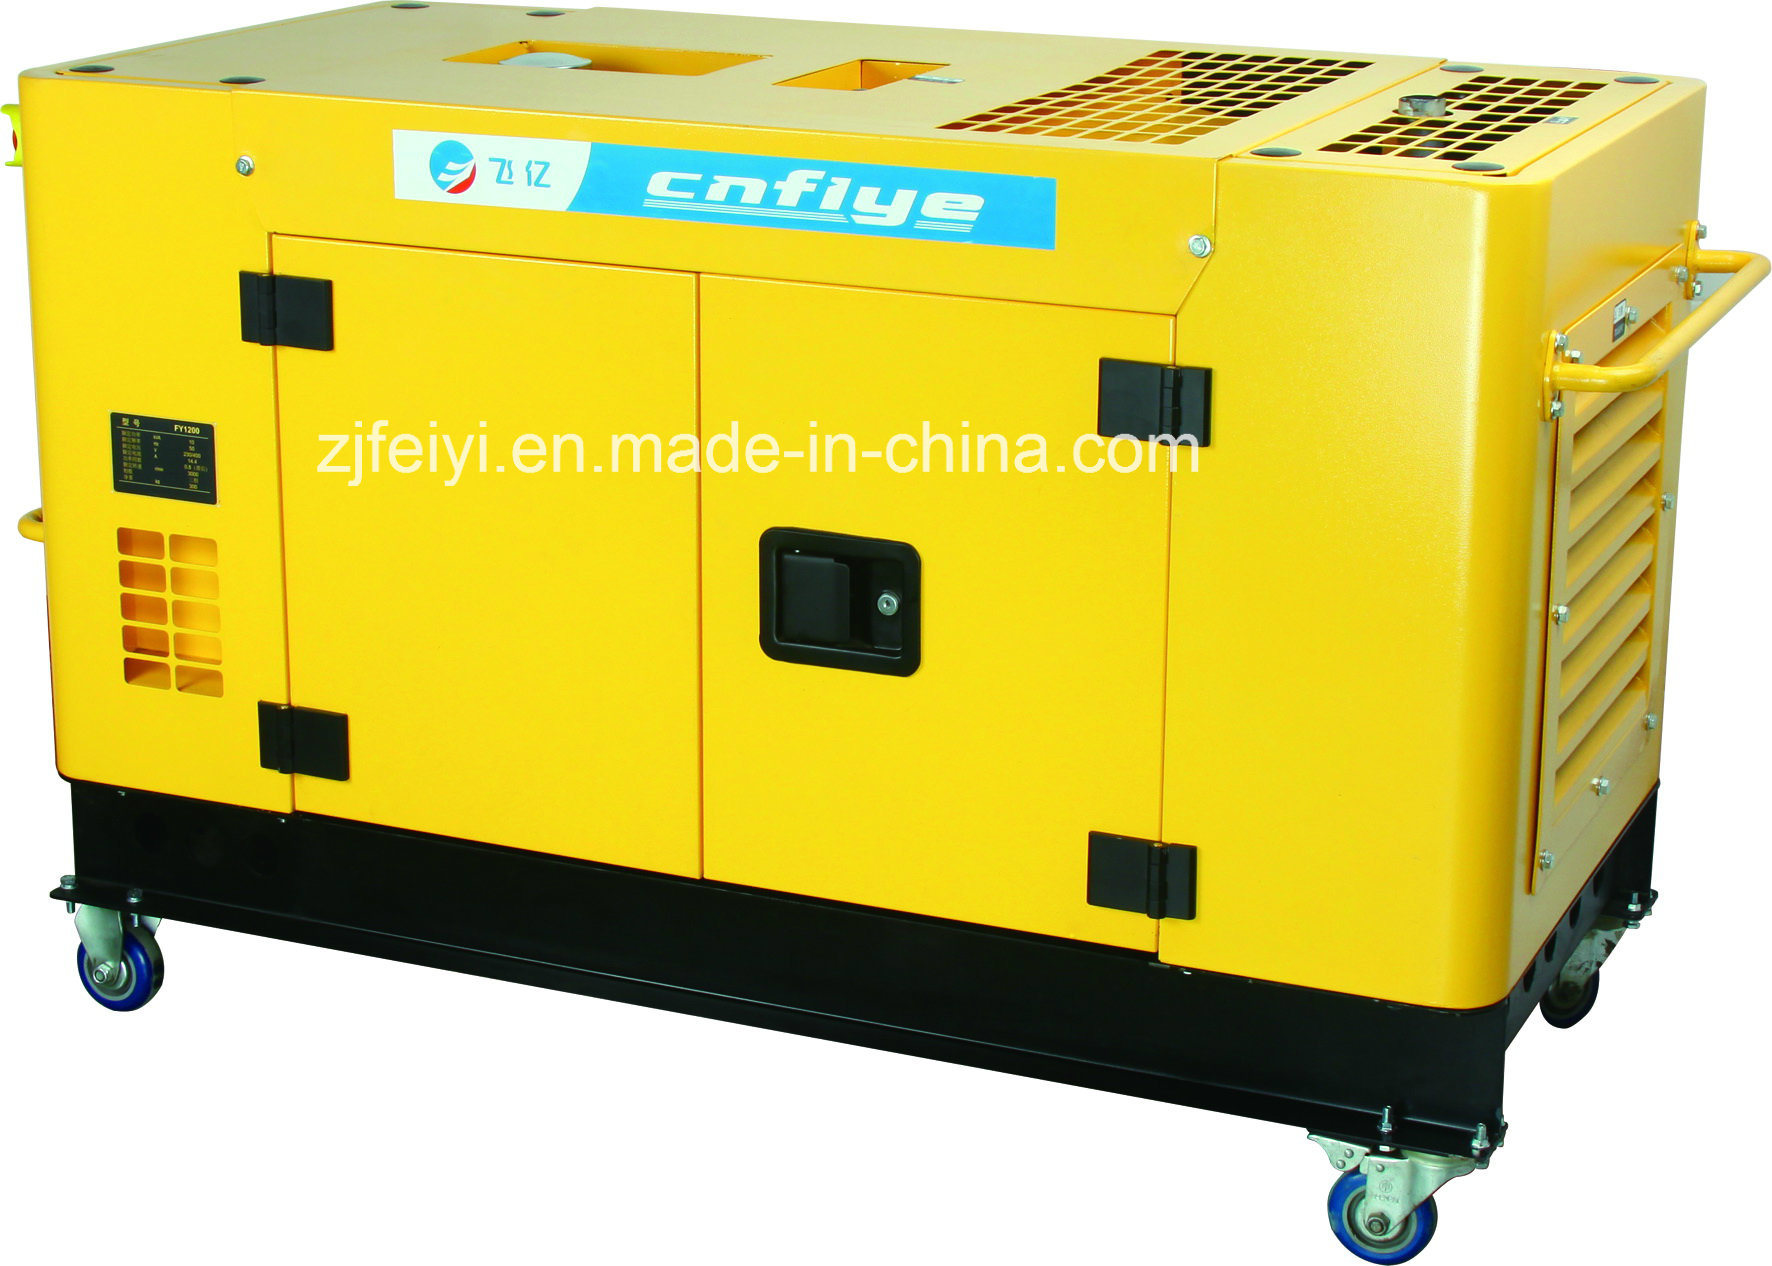 Fy-A0001 10kw Self-Starting Portable Professional Diesel Generator